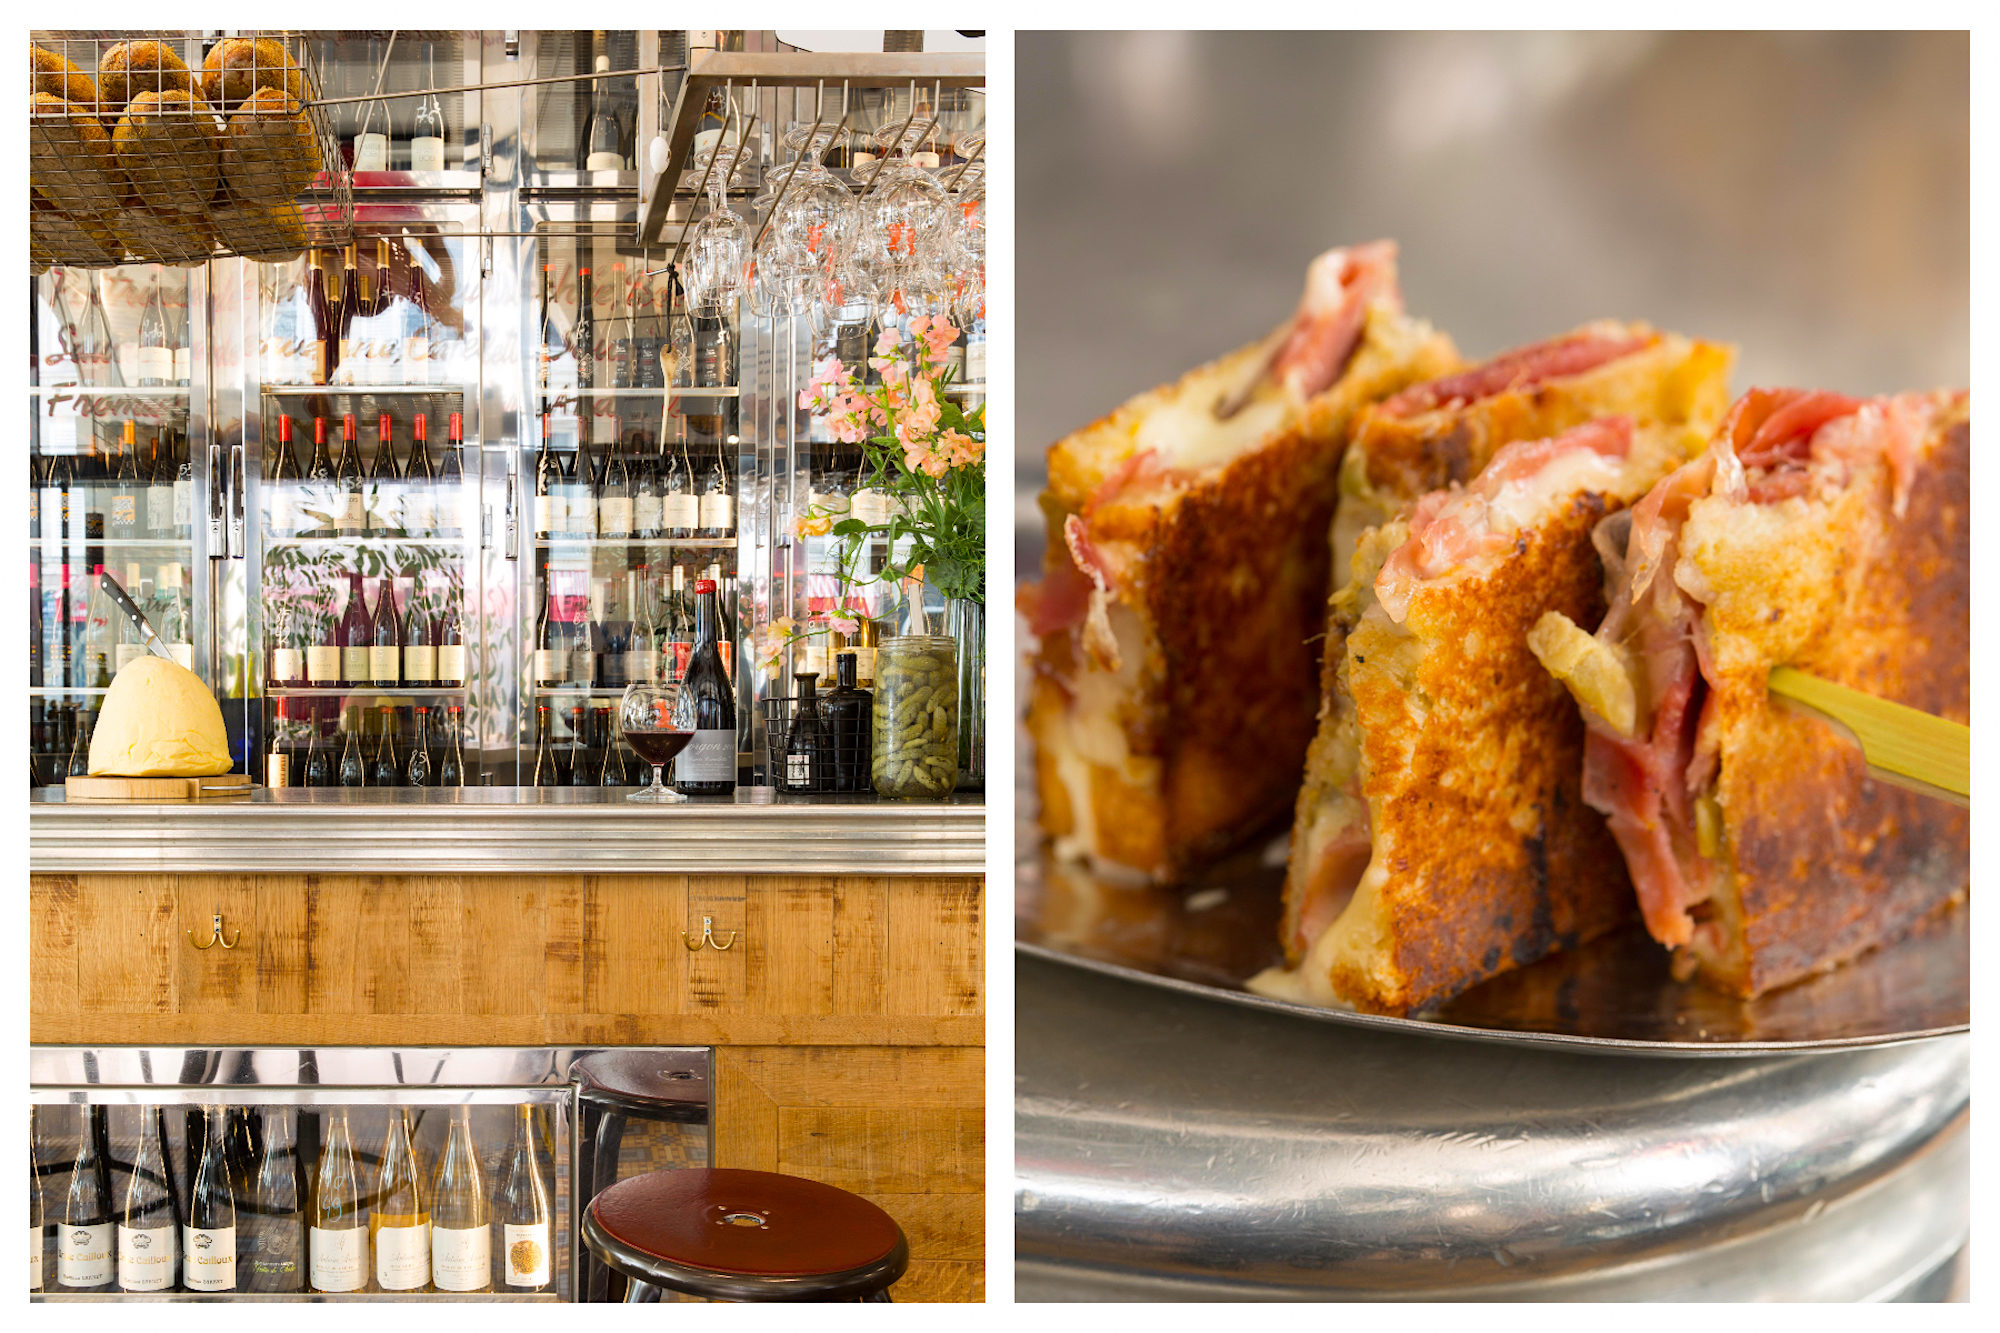 L'avant Comptoir du Marché does great small plates in Paris and has an impressive wine collection (left) and tasty tapas-like bites for pre-dinner drinks (right).